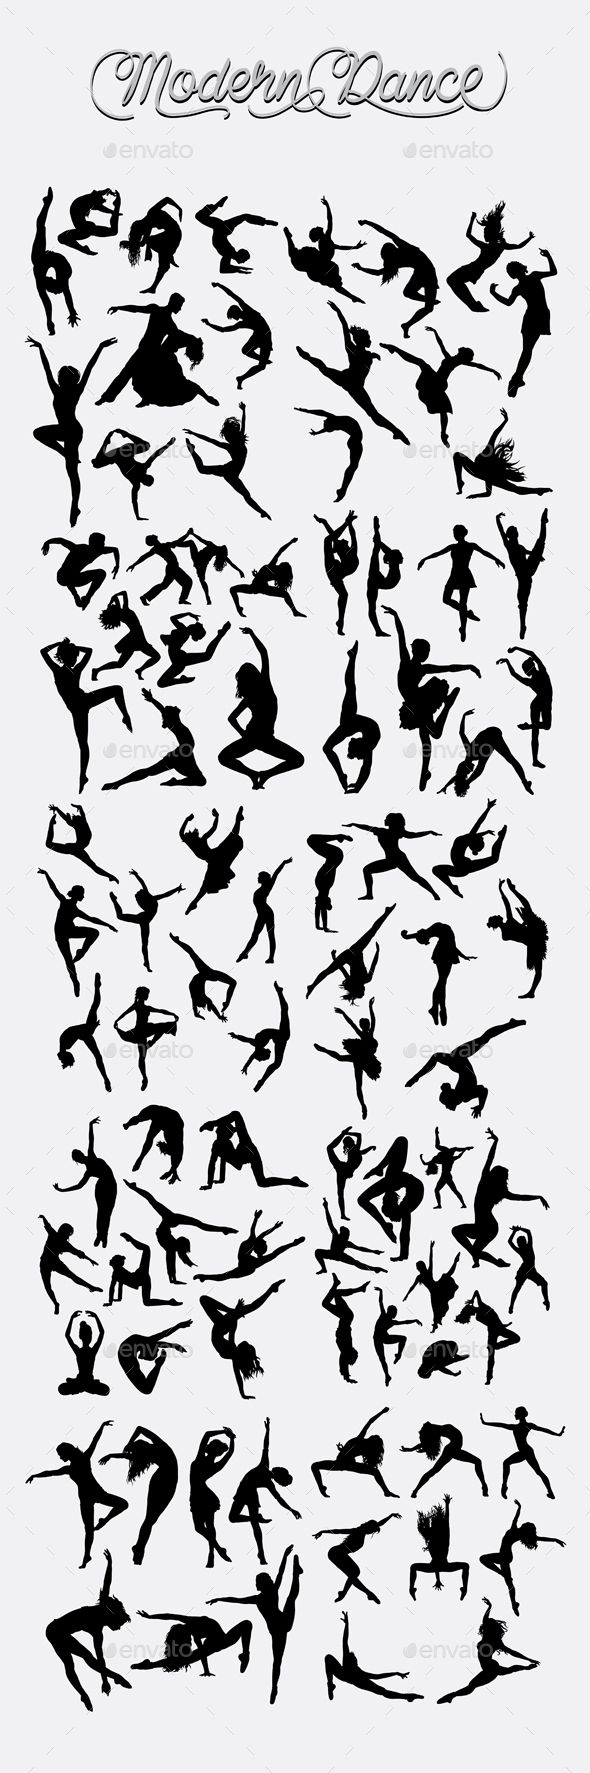 Modern Dance Silhouettes Vector EPS, AI Illustrator. Download here: https://graphicriver.net/item/modern-dance-silhouettes/16550215?ref=ksioks